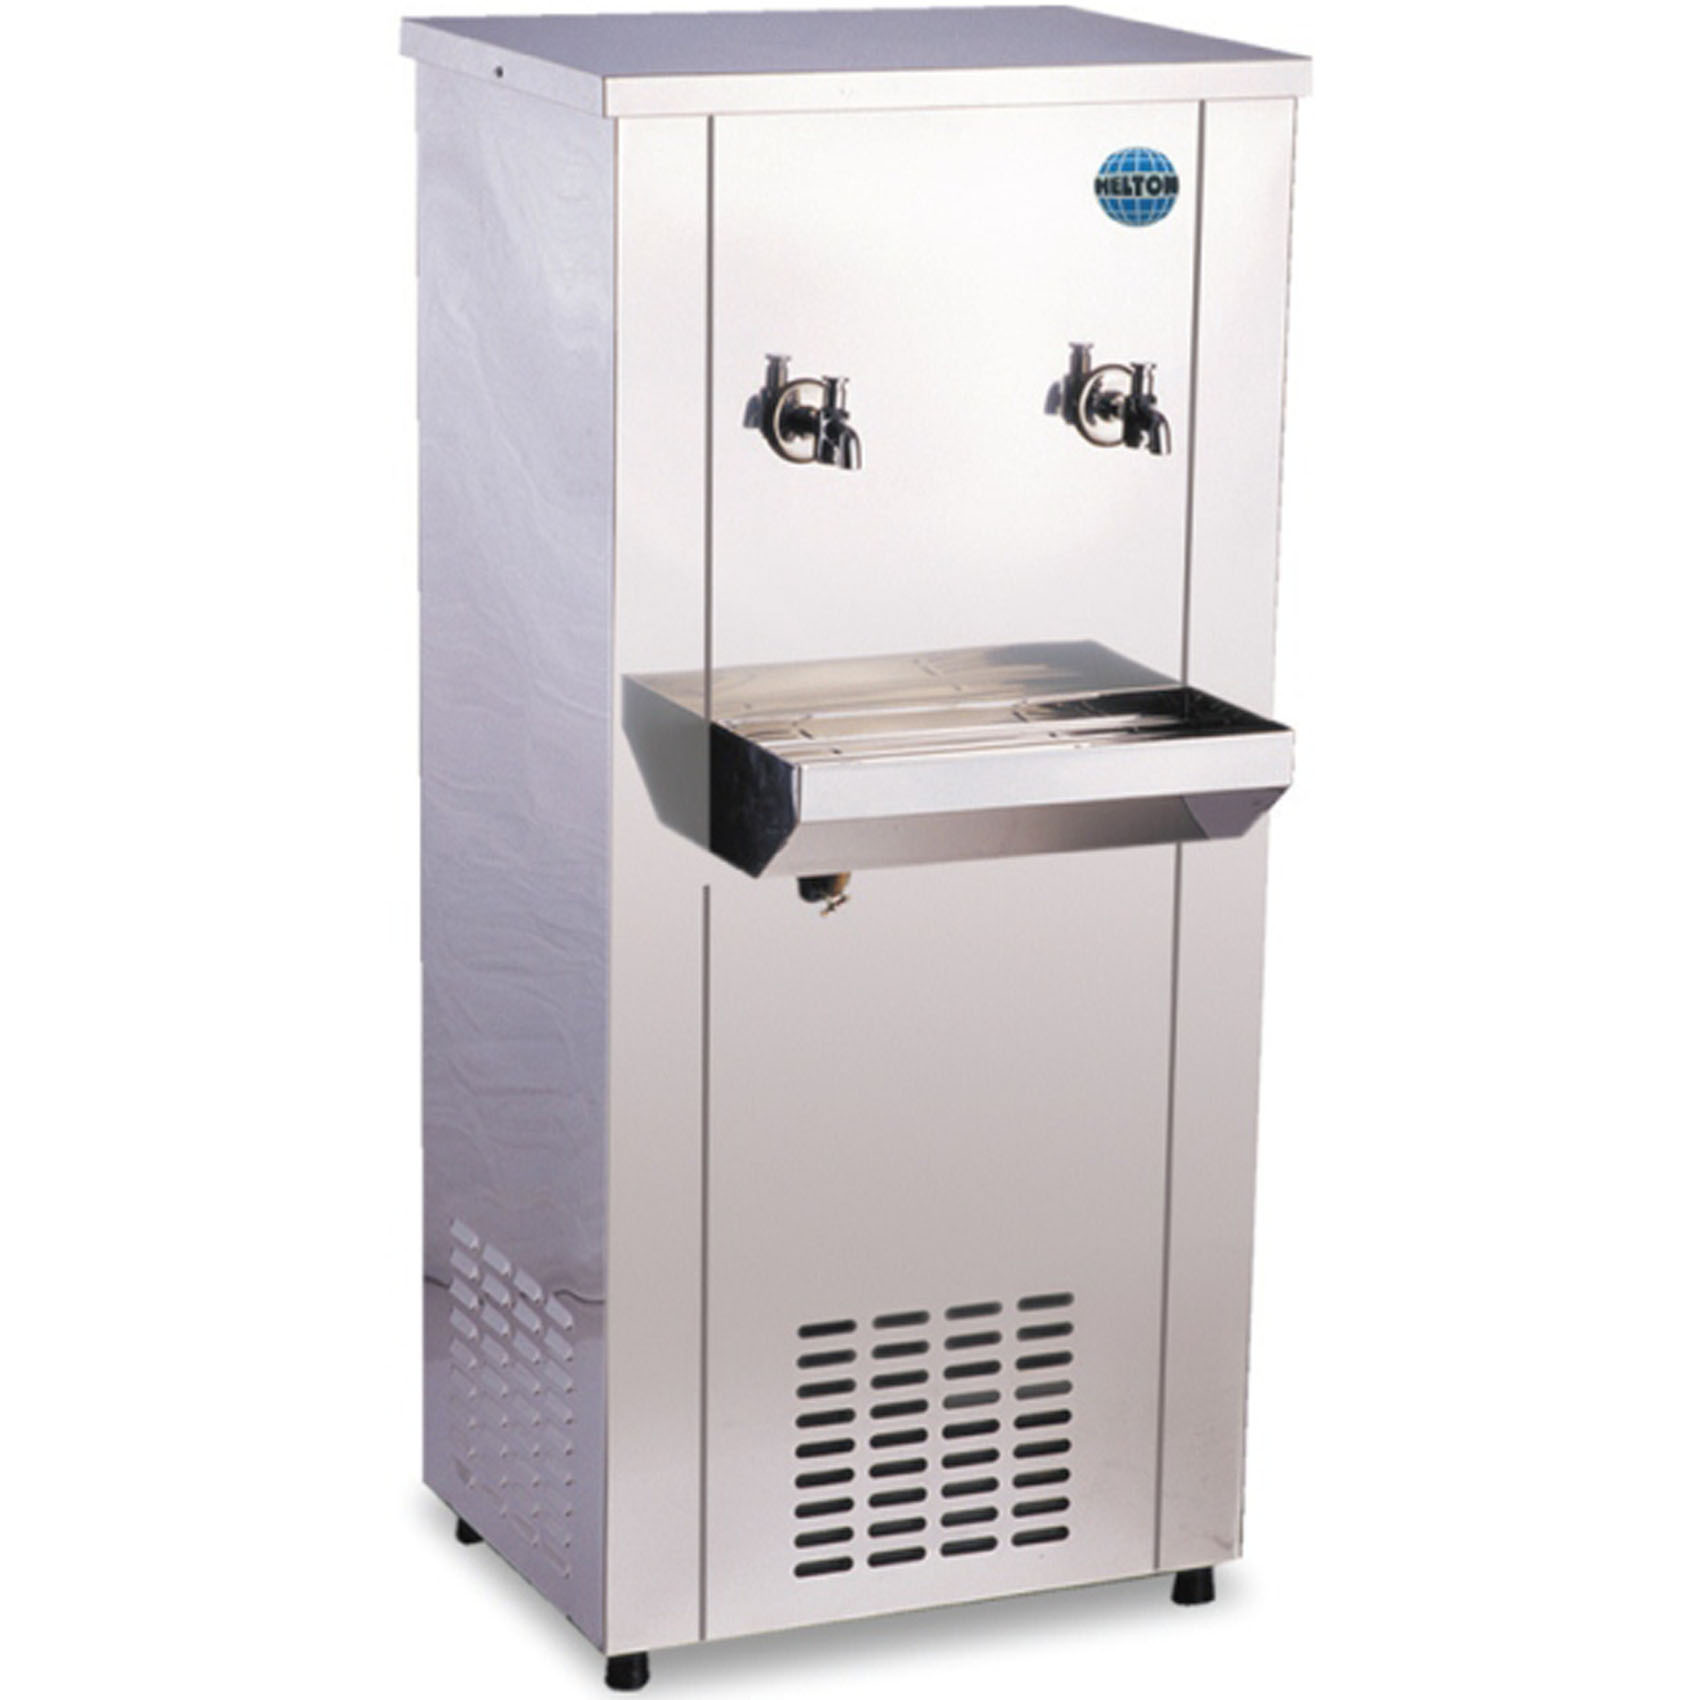 HELTON 1126HT25T2SS WATER COOLER